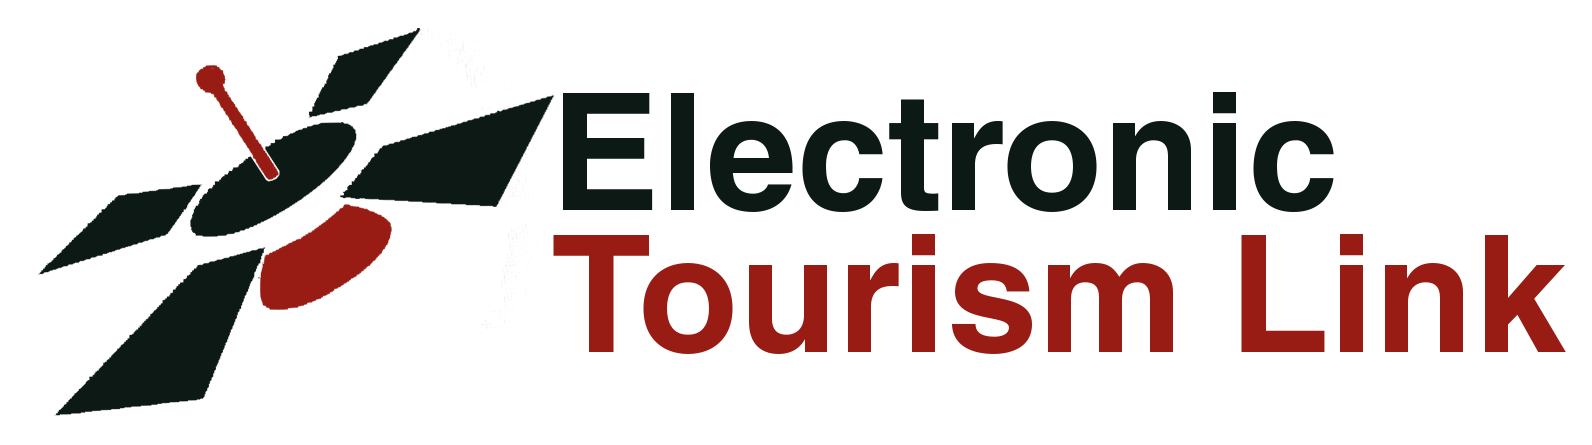 Electronic Tourism Link